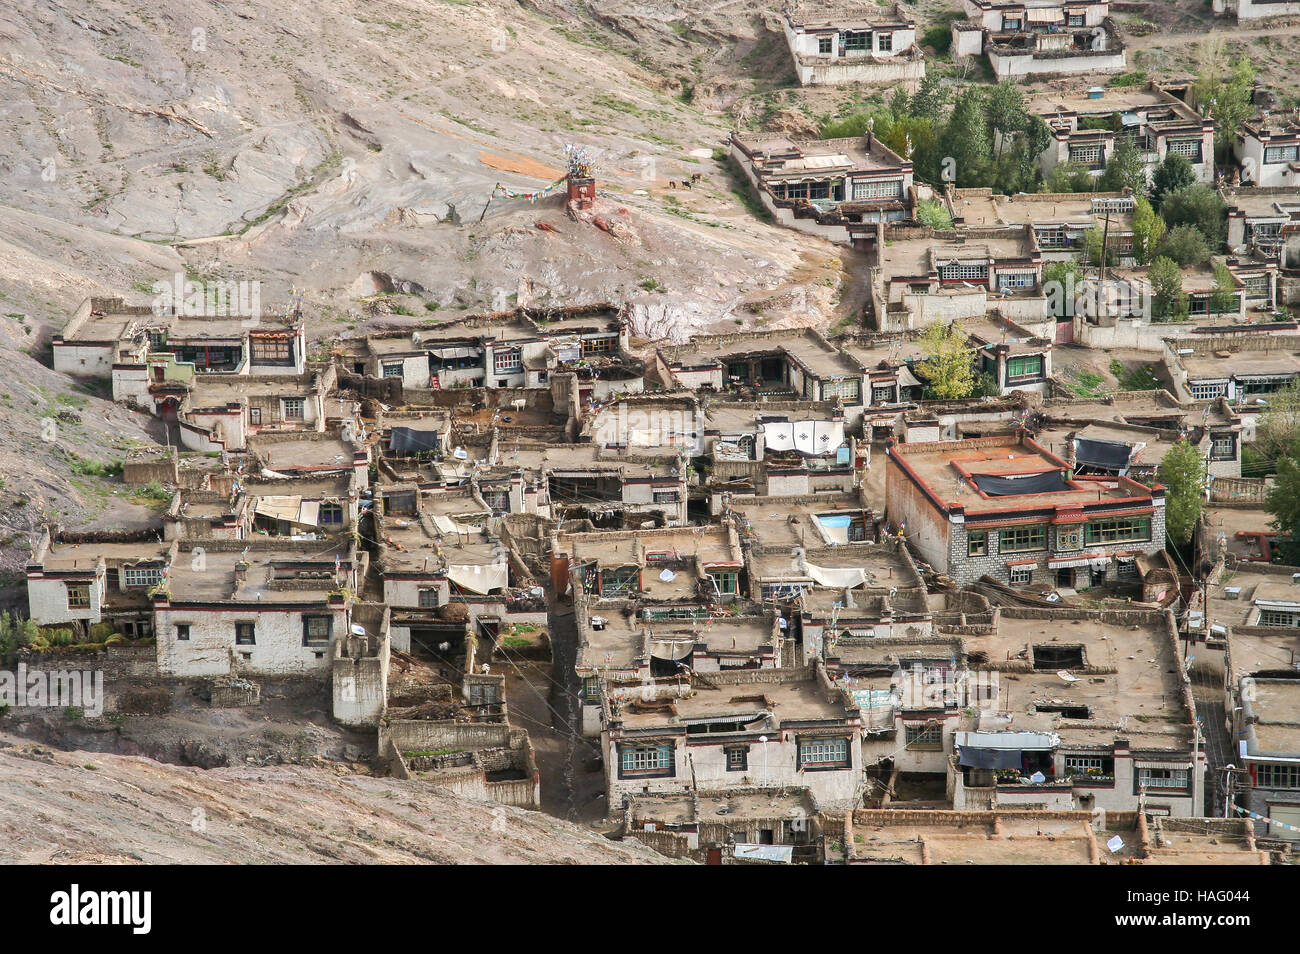 Traditional tibetan homes in the Gyantse town in the Tibet Autonomous Region of China - Stock Image